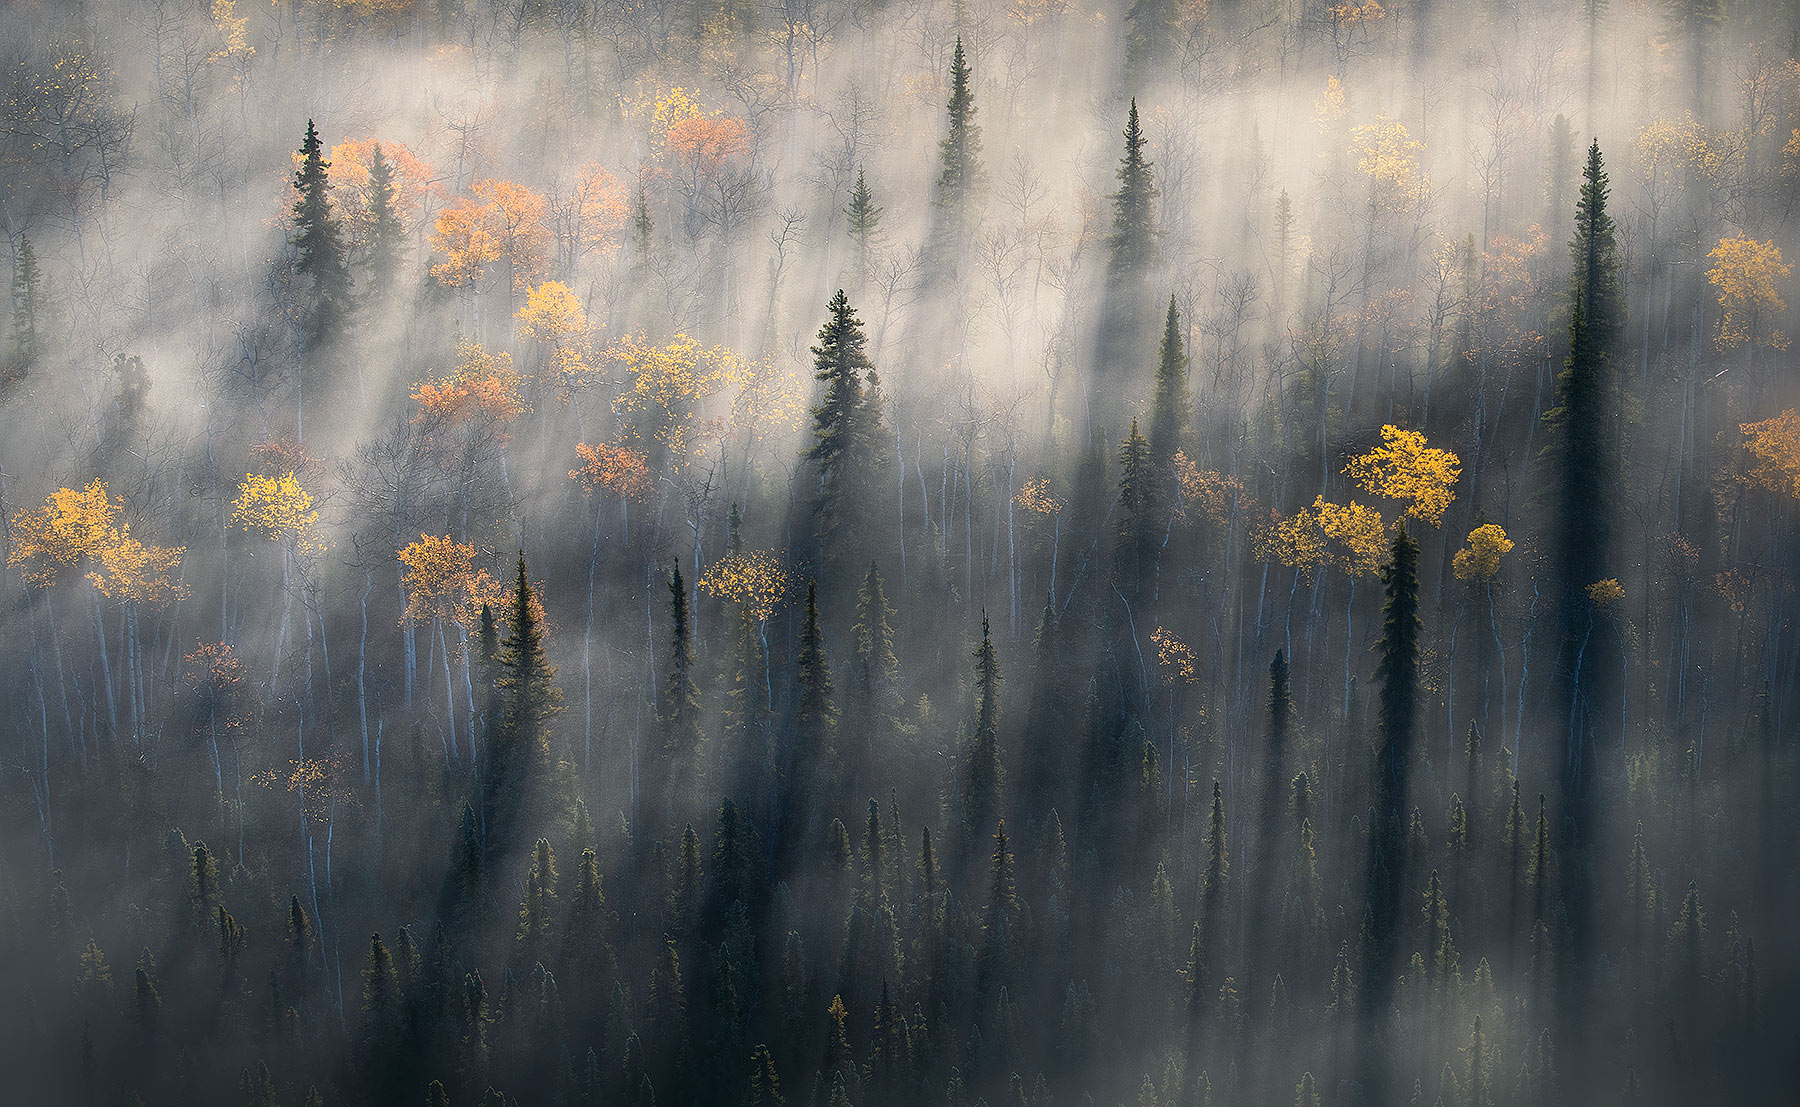 Boreal forest, autumn, fog, peaceful, photo